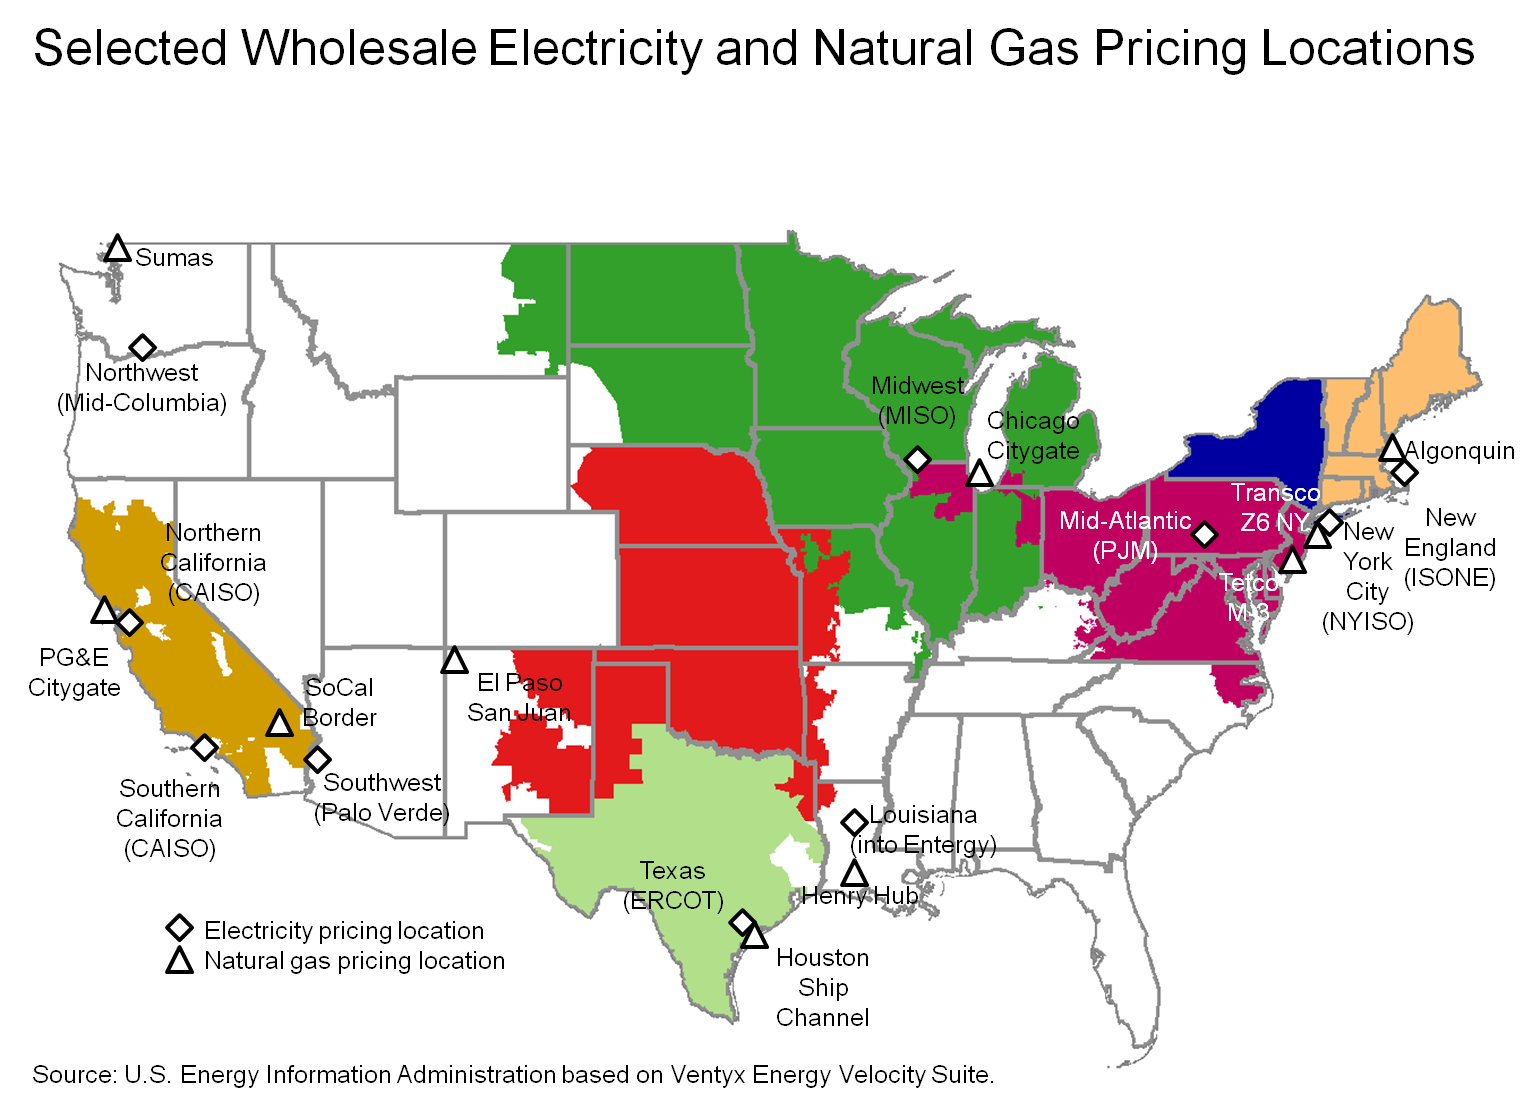 Maps US Energy Information Administration EIA - Us shale plays map eia